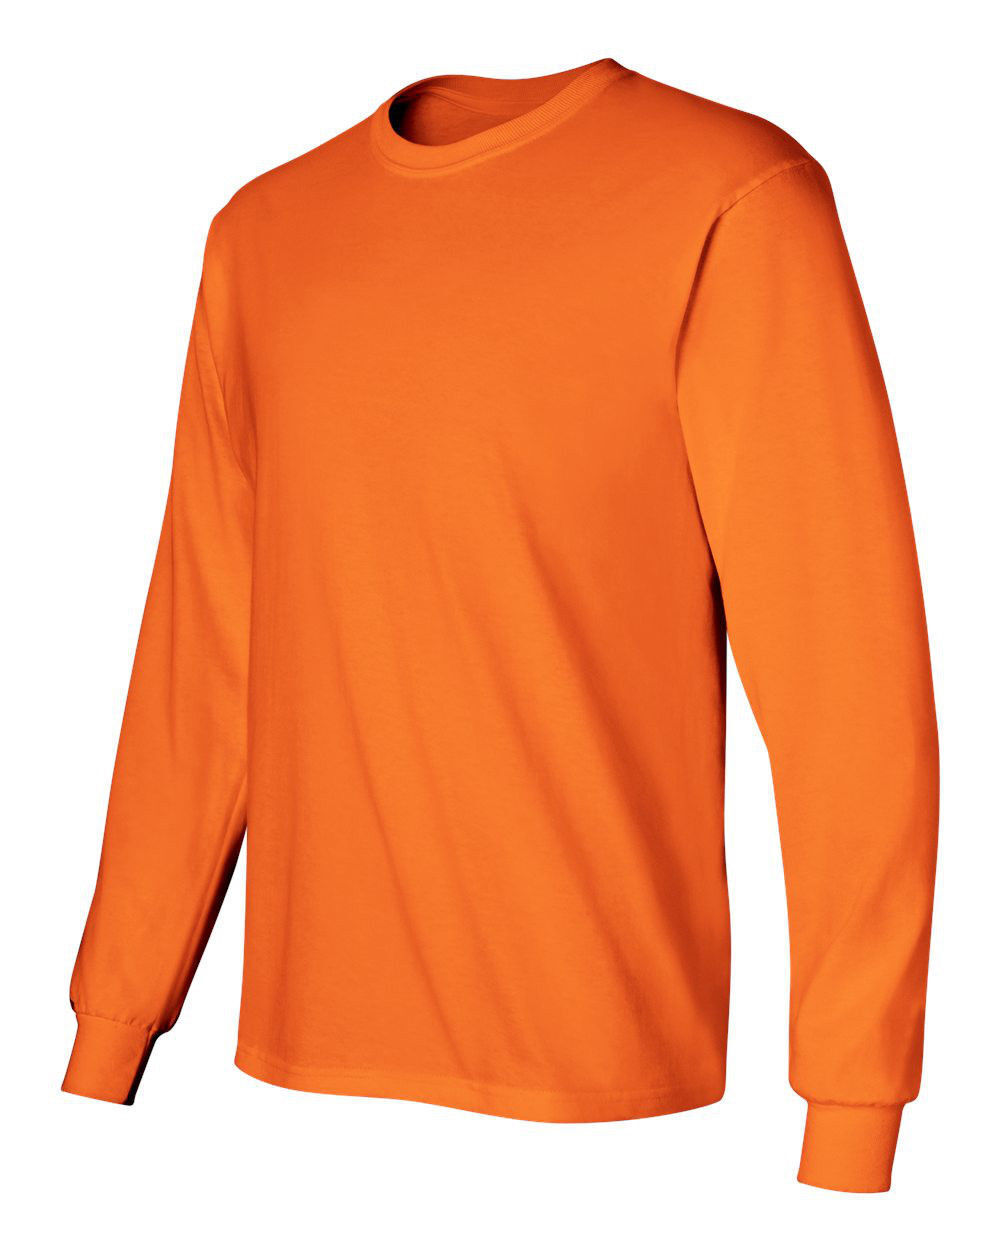 3 Gildan Ultra Cotton Long Sleeve 50 50 SAFETY orange Adult T-Shirts Sizes S-5XL